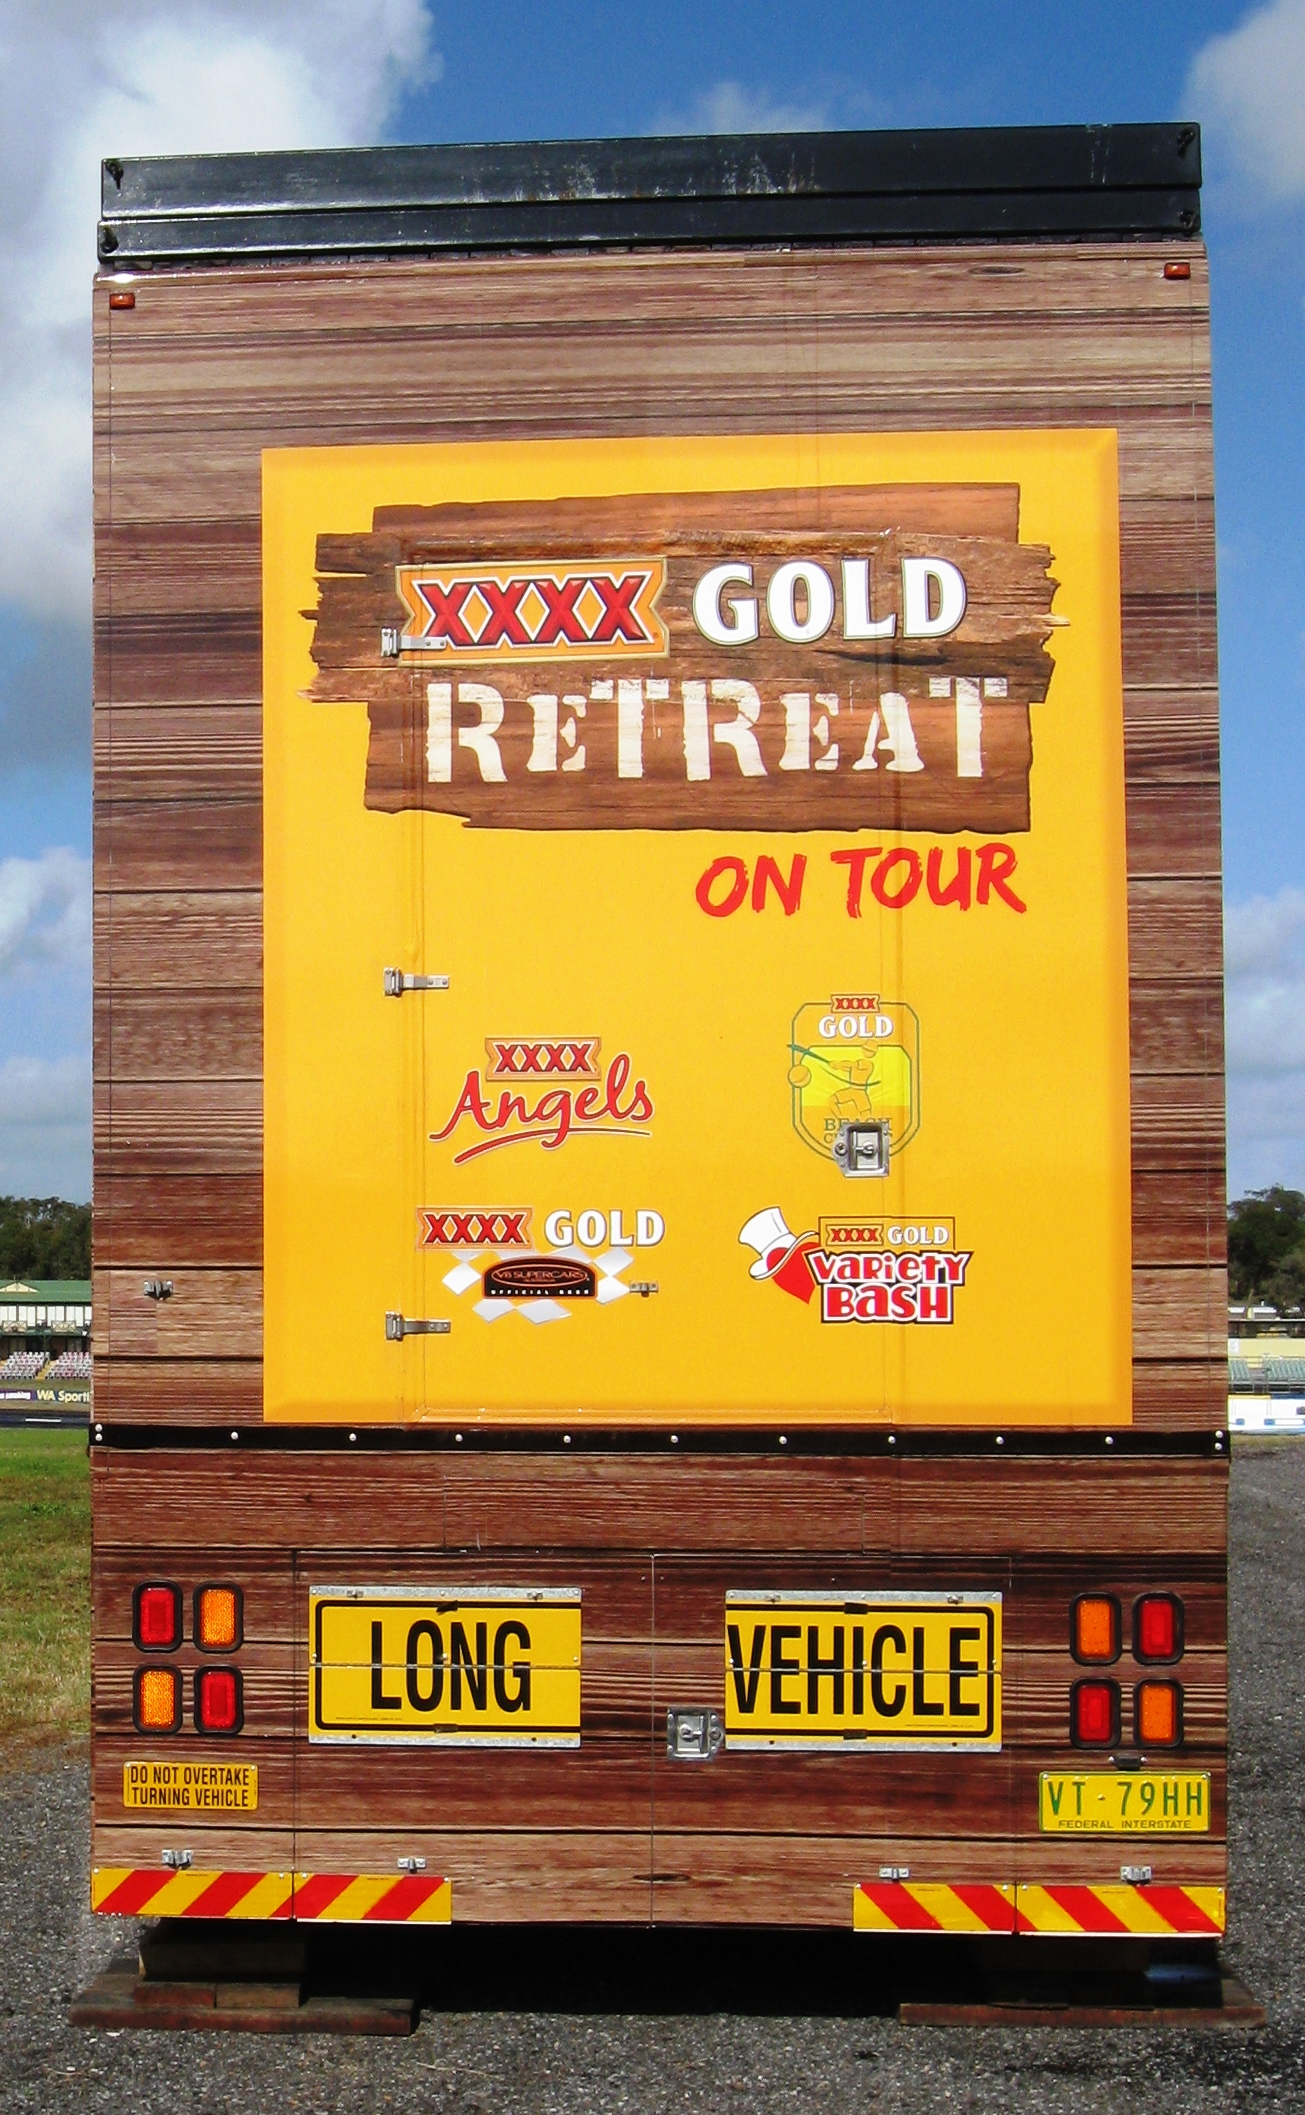 The world-famous XXXX Gold Retreat. Truck advertising. Vehicle-based events. Custom build. Fleet graphics. Truckside advertising. Vehicle Wraps. Trailer wraps. XXXX Angels. V8 Supercars. Lion Nathan. XXXX Gold. Full TrackBack. Long Vehicle.